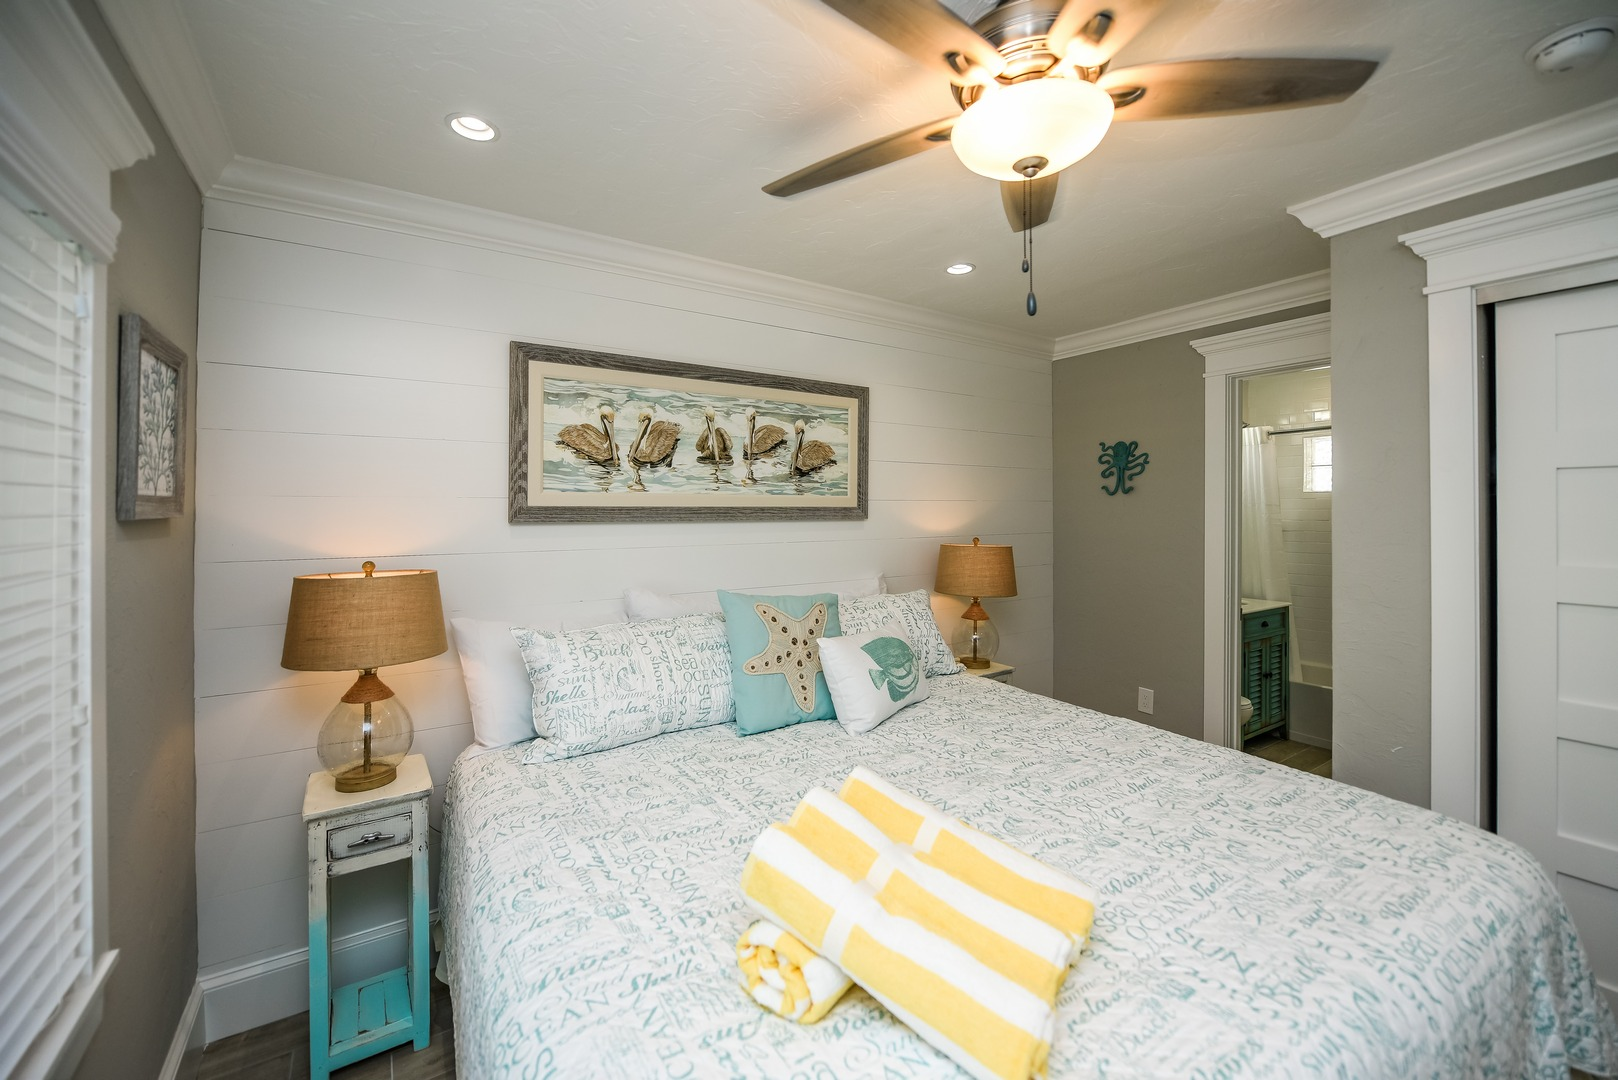 King Bed and Master Bath Access